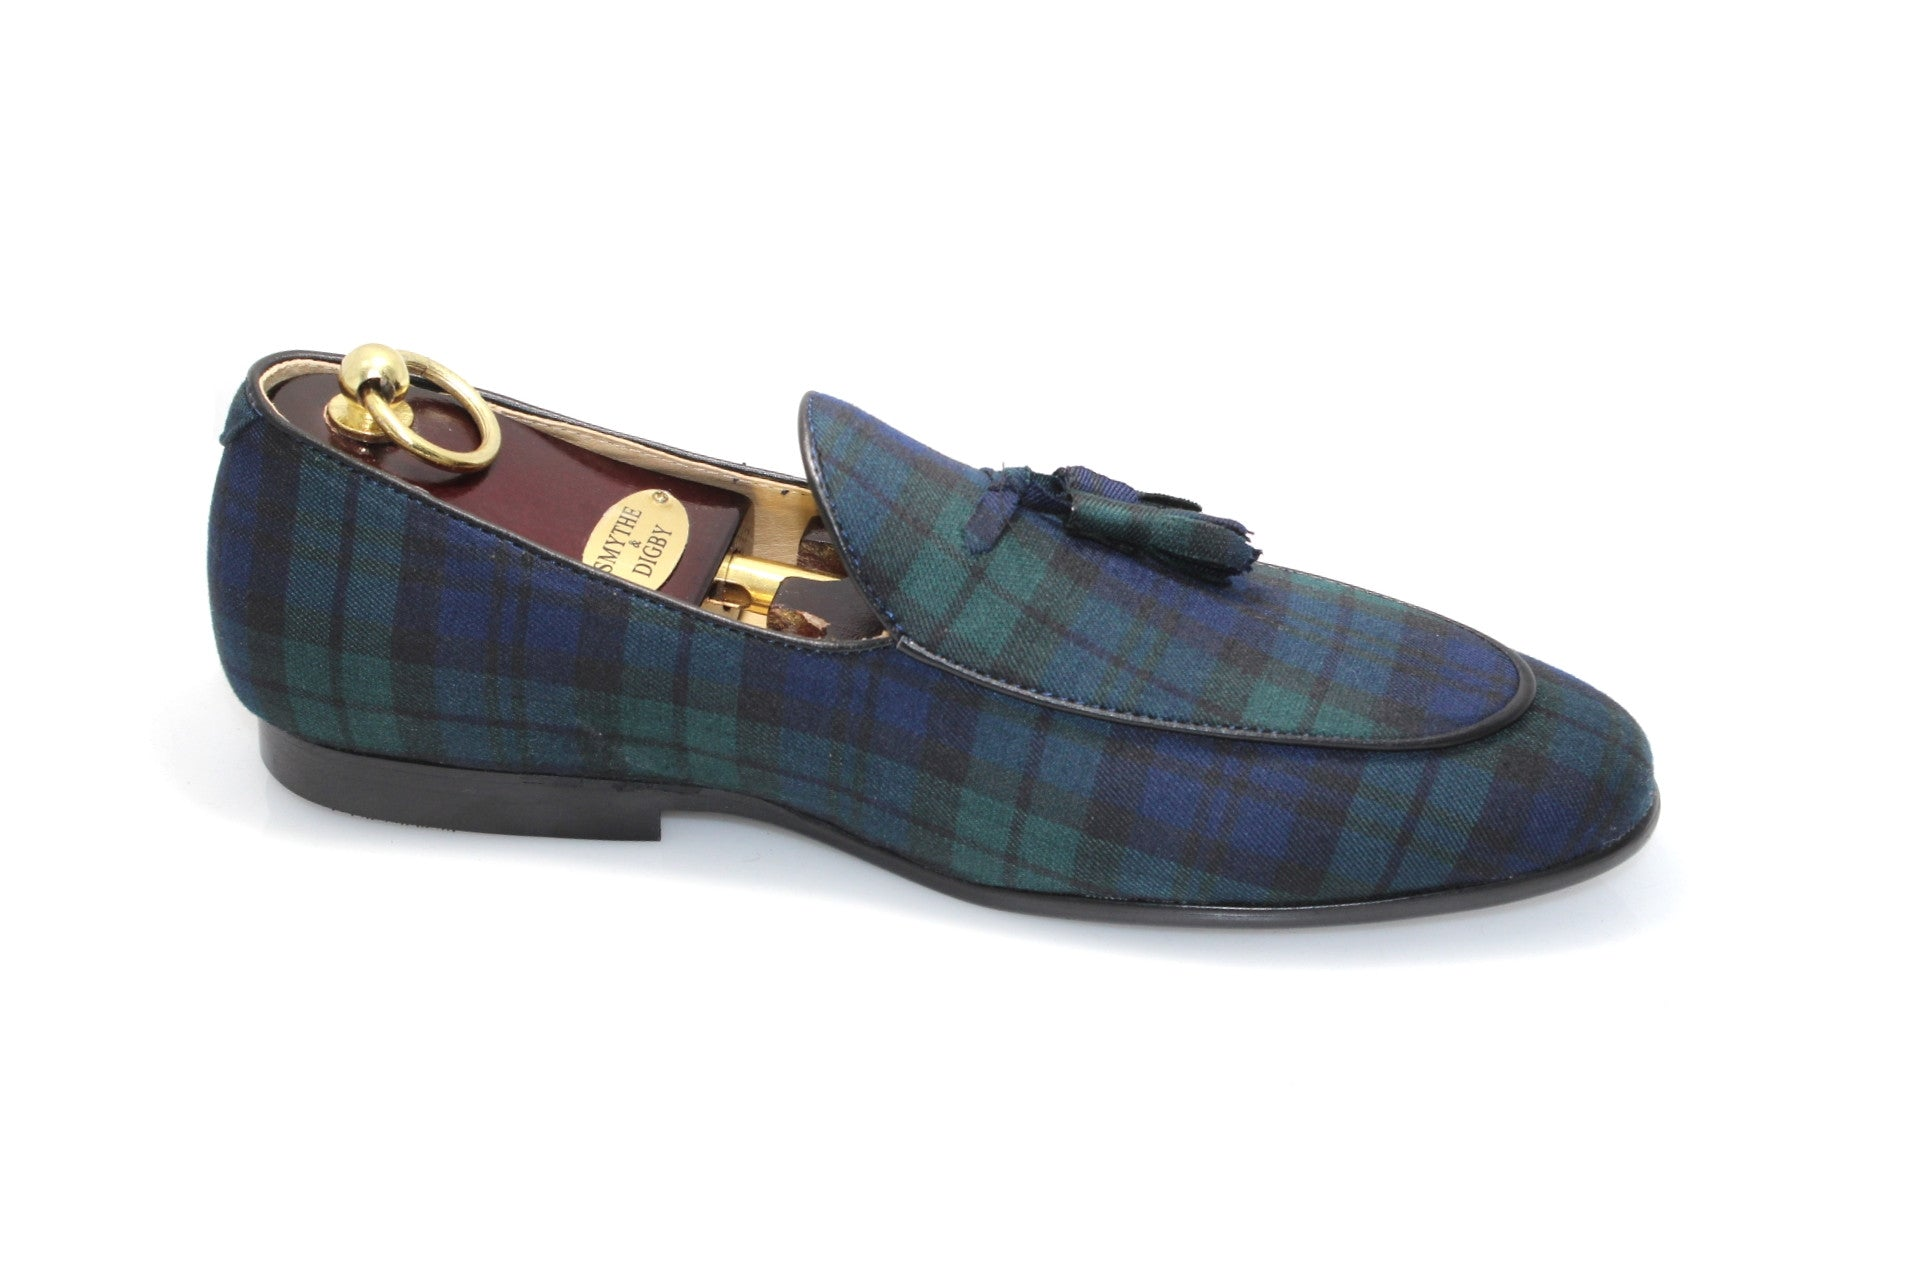 Smythe & Digby Men's Belgian Slipper Black-watch Tartan Loafers